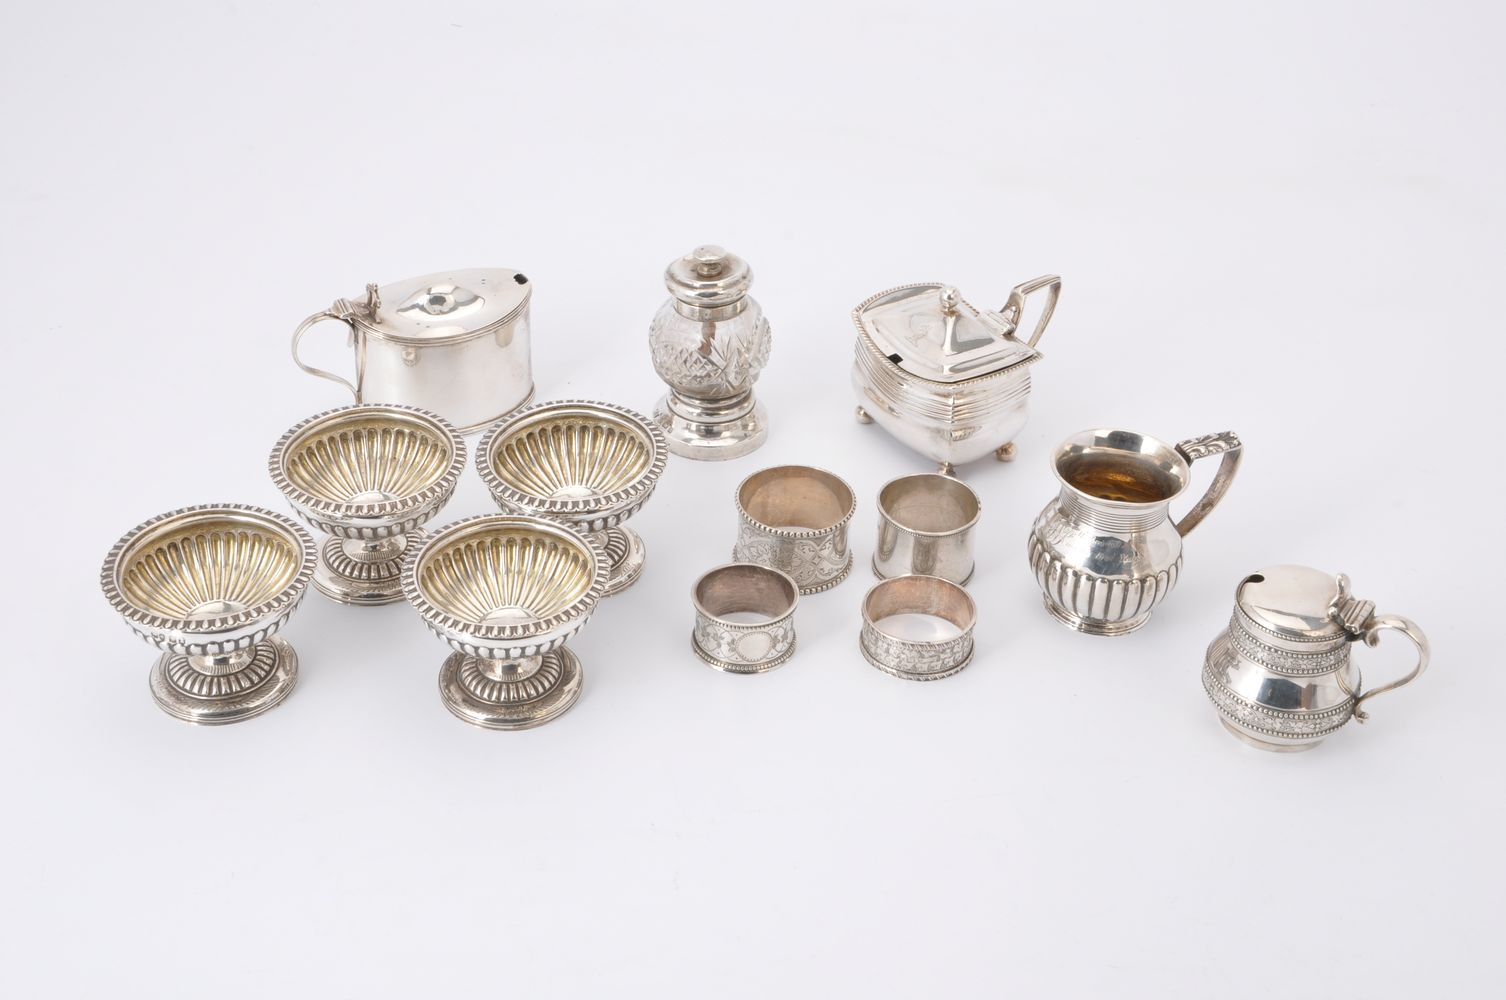 A collection of small silver mainly cruet items